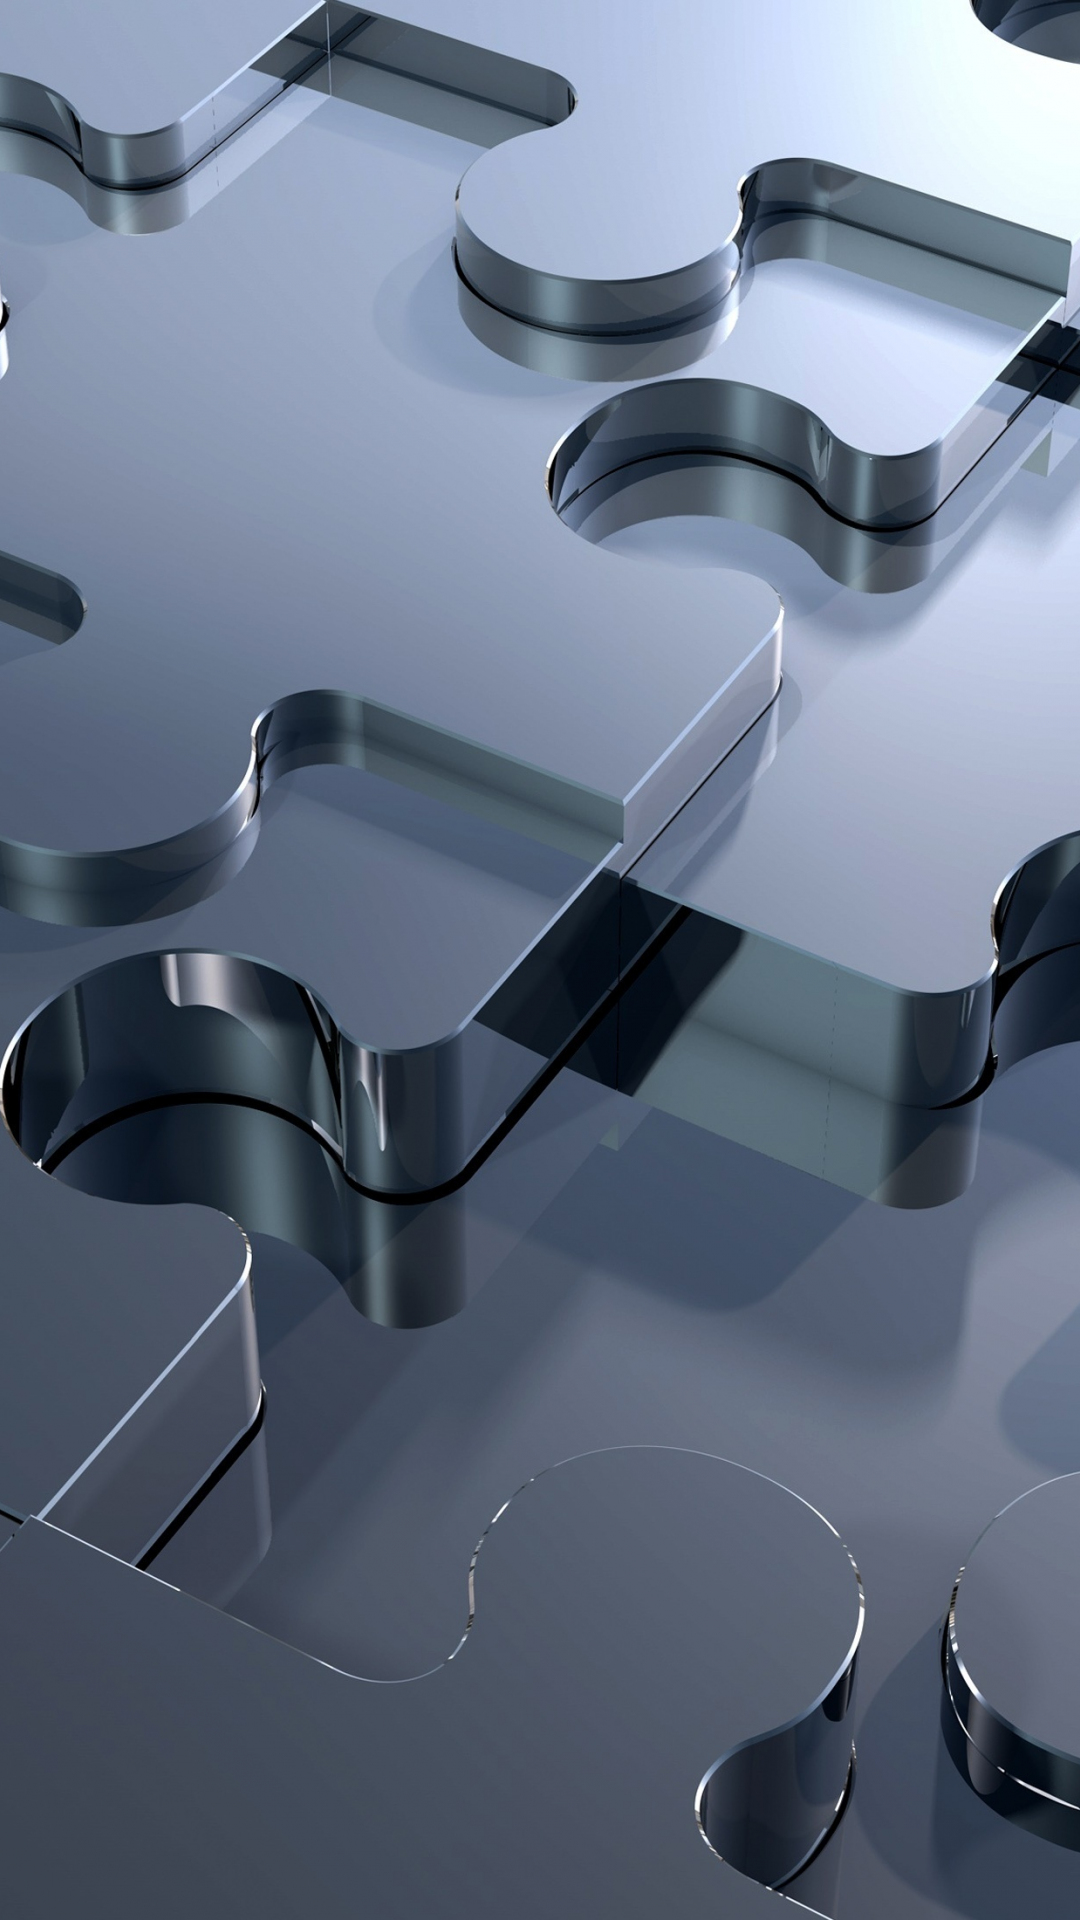 Download 1080x1920 wallpaper 3d, silver, missing piece, puzzle